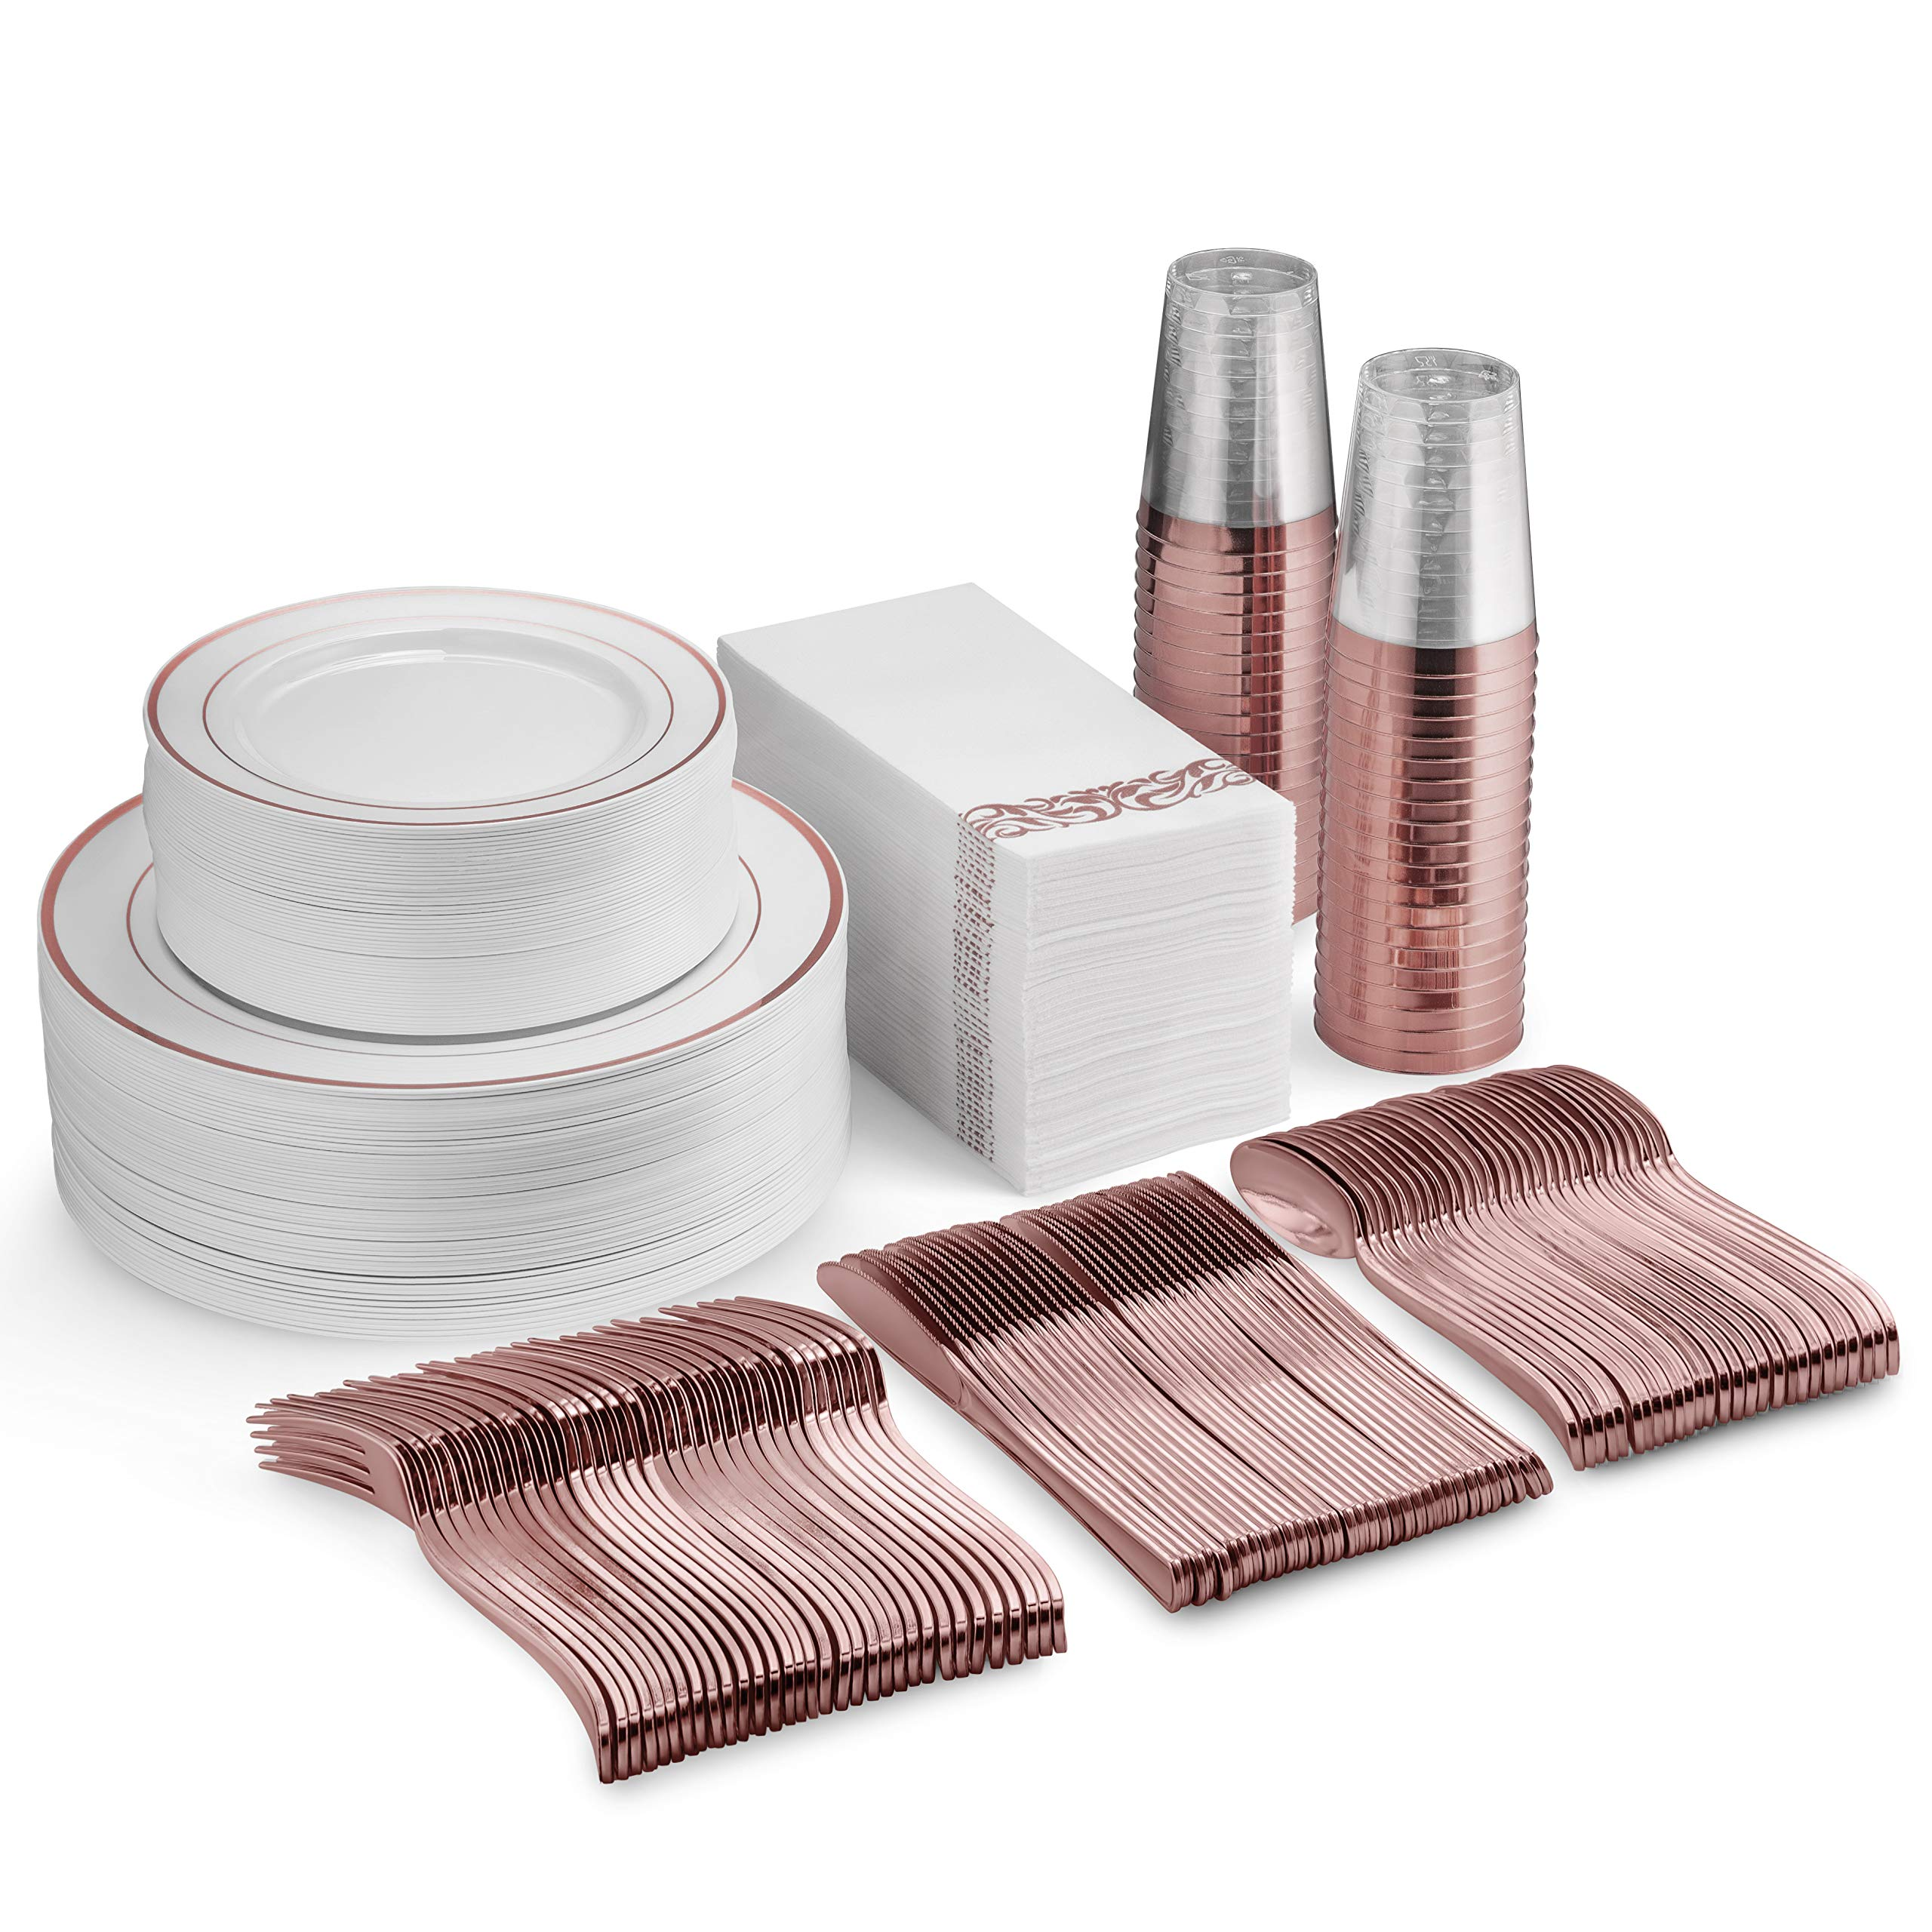 350 Piece Rose Gold Dinnerware Set - 100 Rose Gold Plastic Plates - 50 Rose Gold Plastic Silverware - 50 Rose Gold Cups - 50 Linen Like Rose Gold Napkins, 50 Guest Disposable Rose Gold Dinnerware Set by Munfix